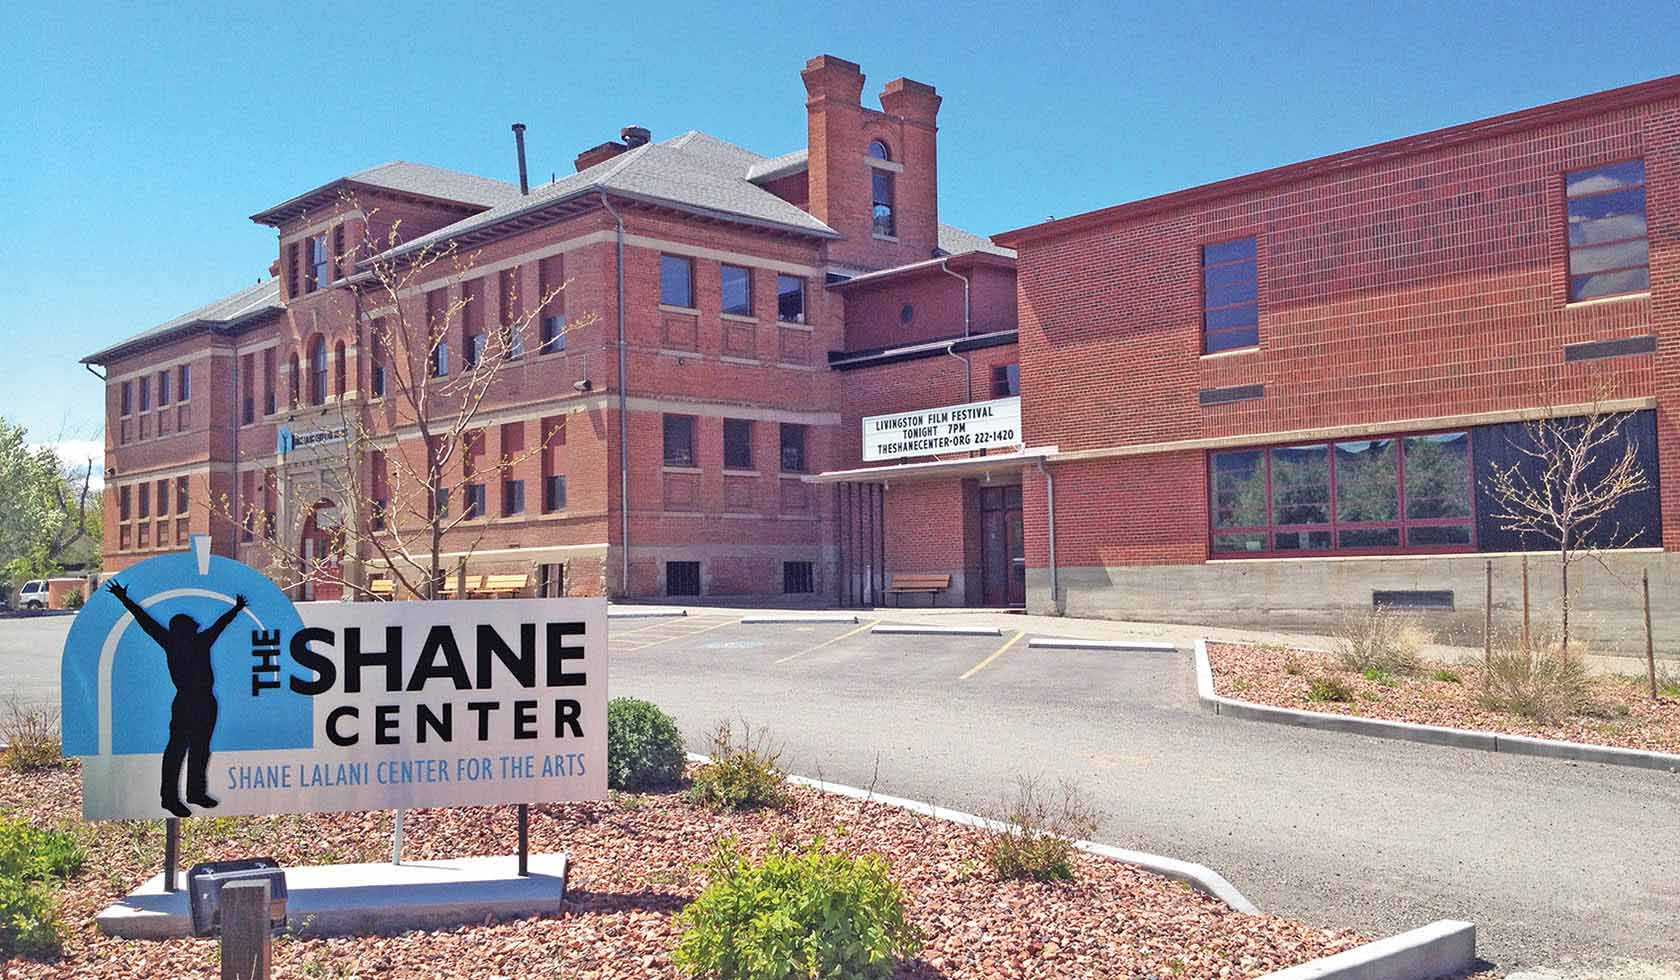 Shane Lalani Center for the Arts profile image